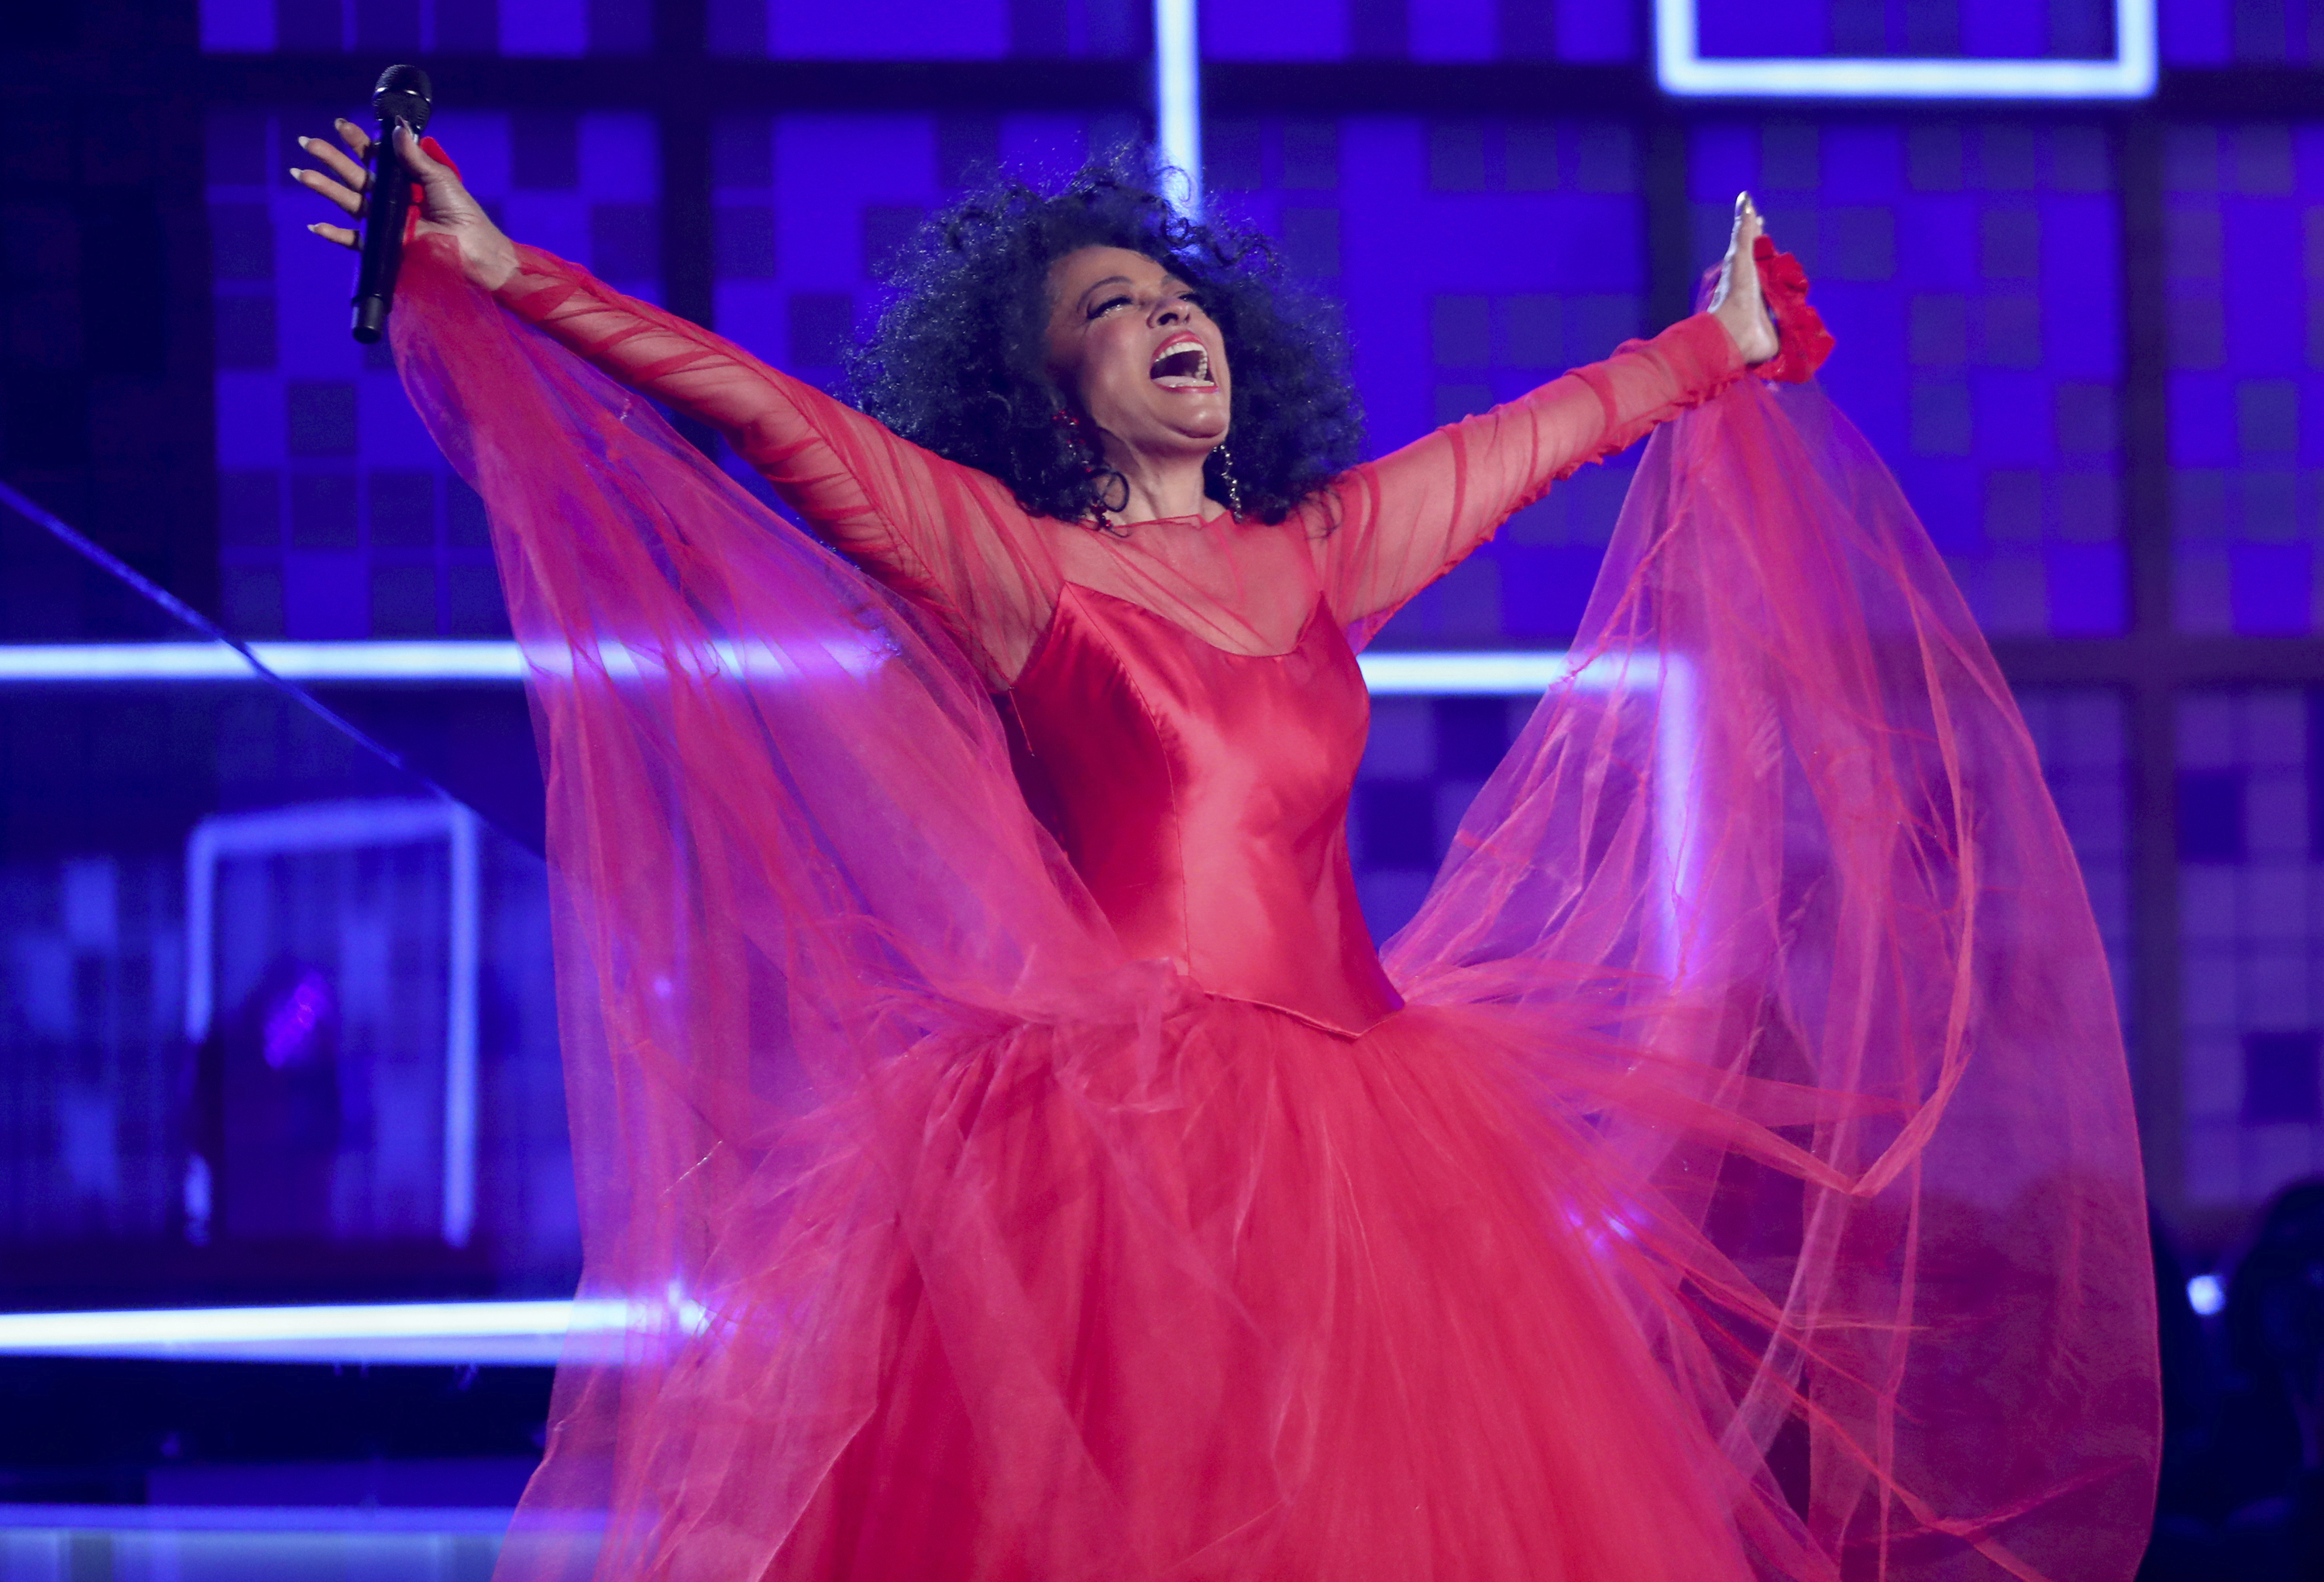 Diana Ross gives inspirational performance at the Grammys to celebrate her 75th birthday